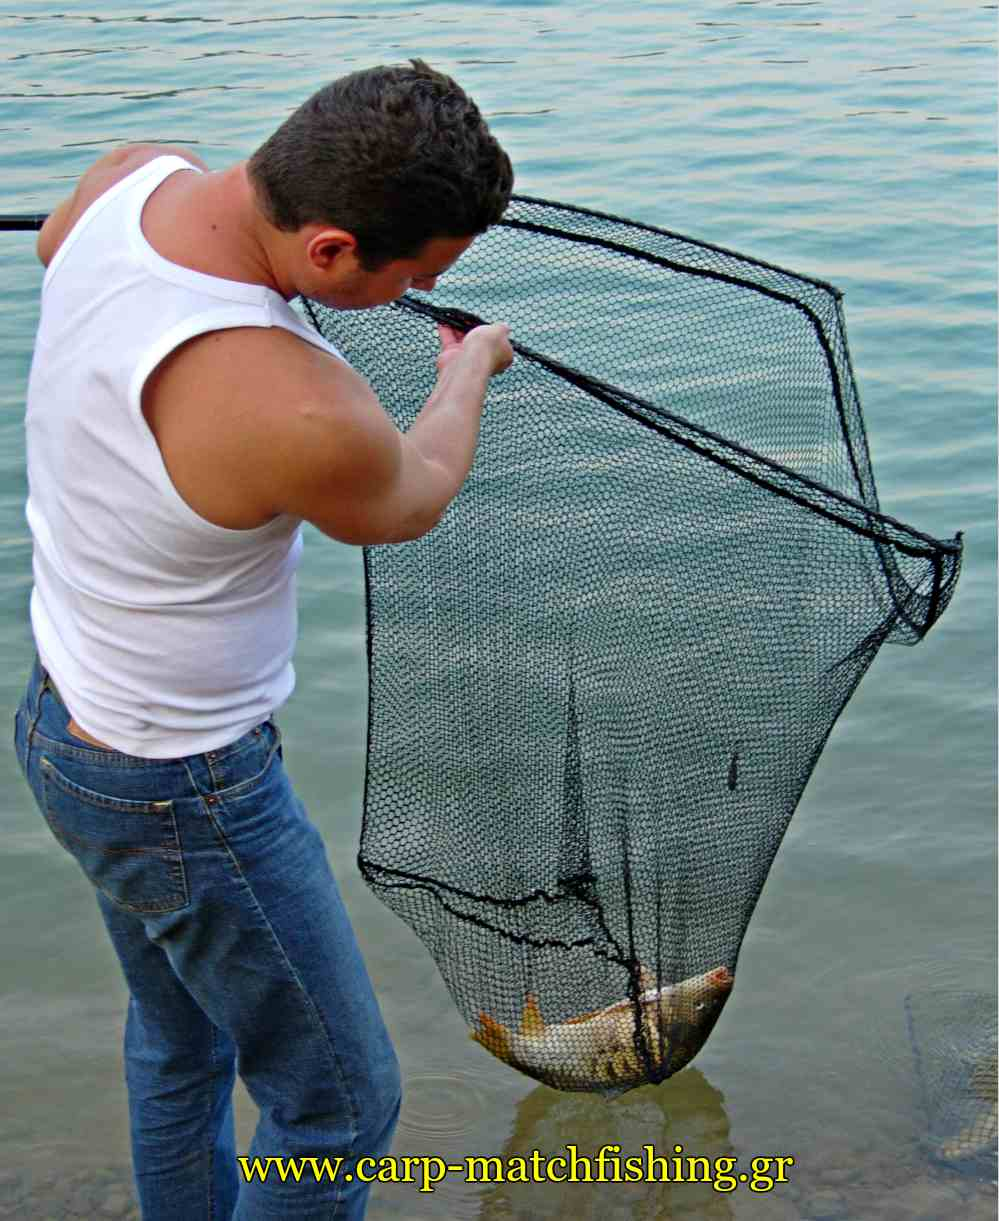 carp-net-catch-and-release-carpmatchfishing